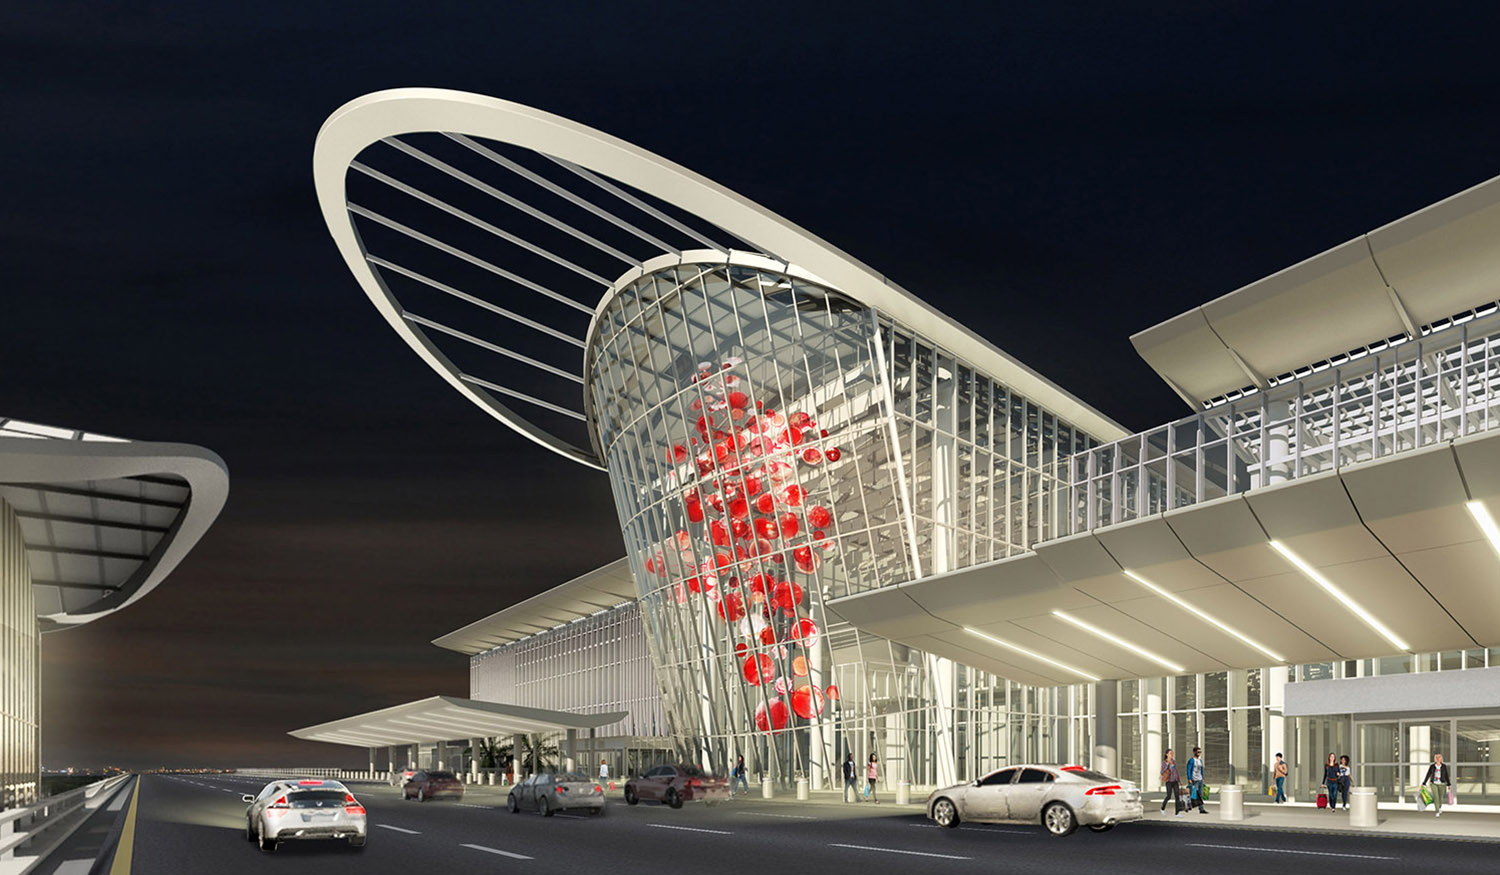 The new South Terminal Complex establishes Orlando as a travel destination. Fentress Architects}